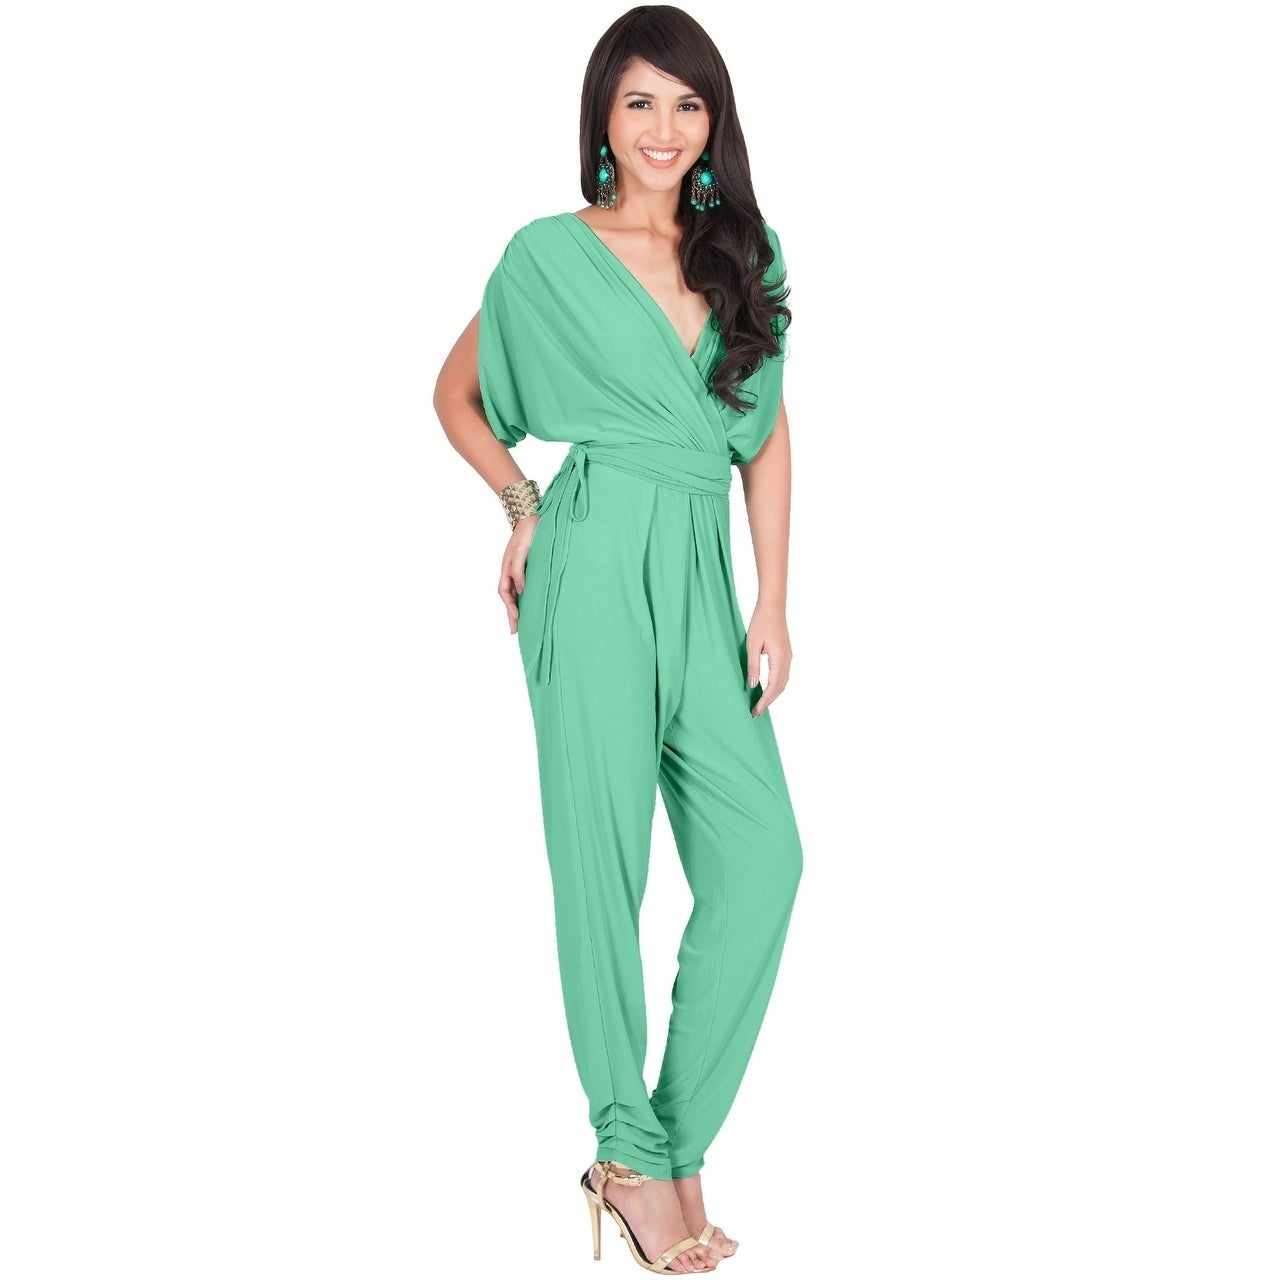 b8e7d9d4d73 Shop KOH KOH Womens Sexy V-Neck Short Sleeve Party Long Romper Jumpsuit -  Free Shipping Today - Overstock - 22532799